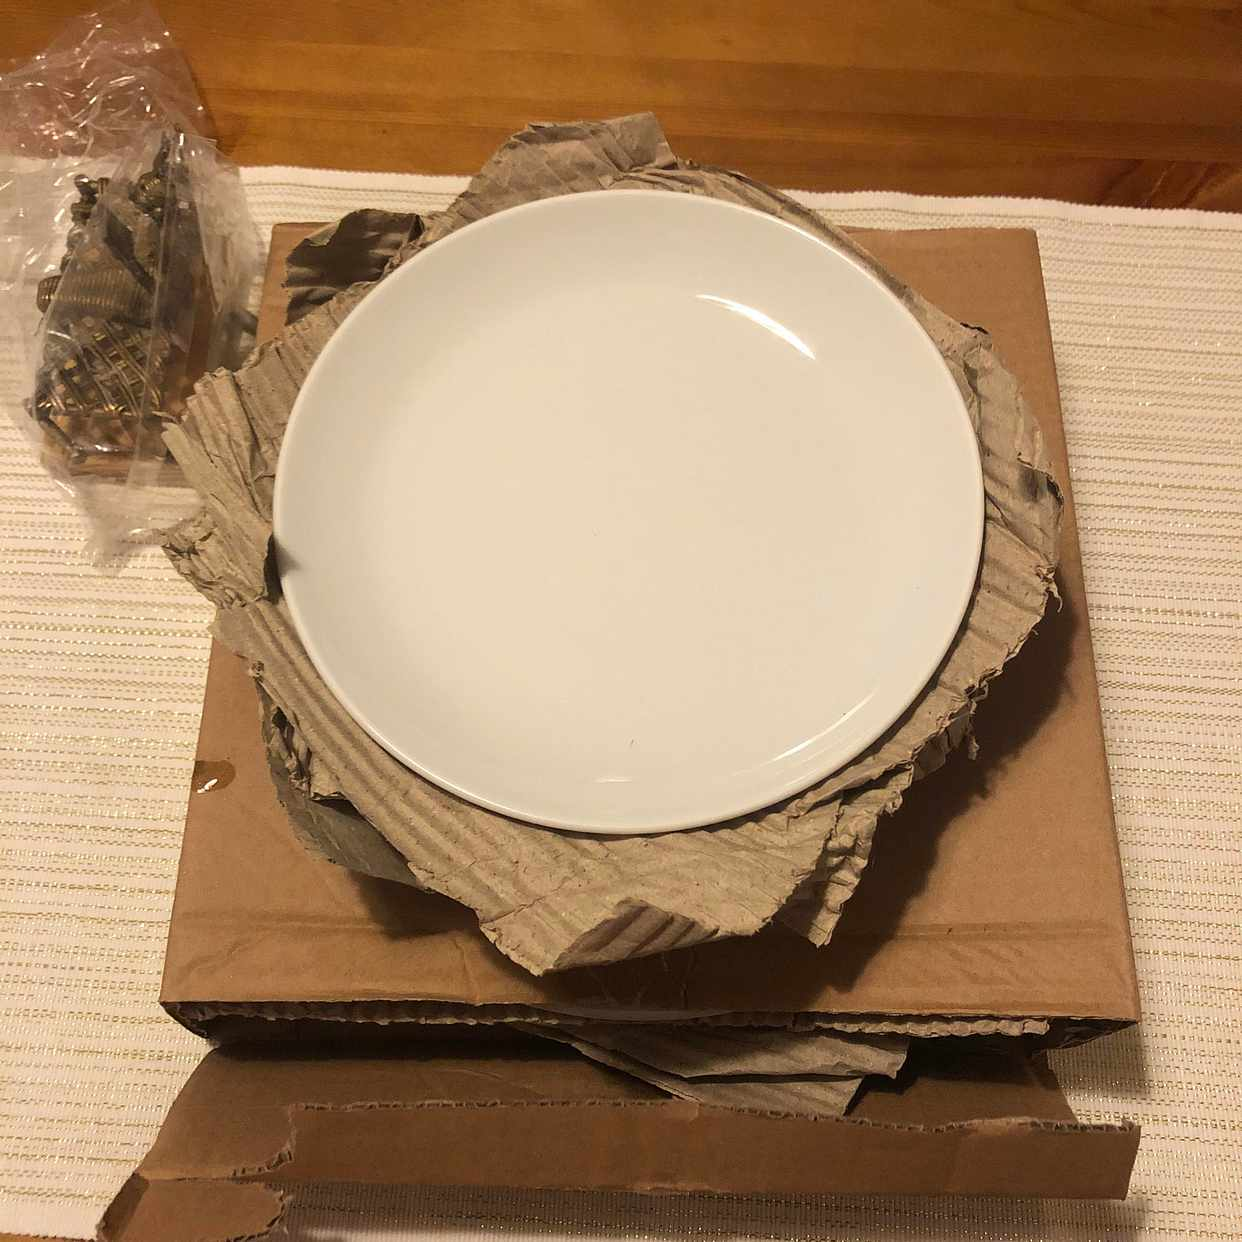 image of Some ikea plates and pan - Stockholm